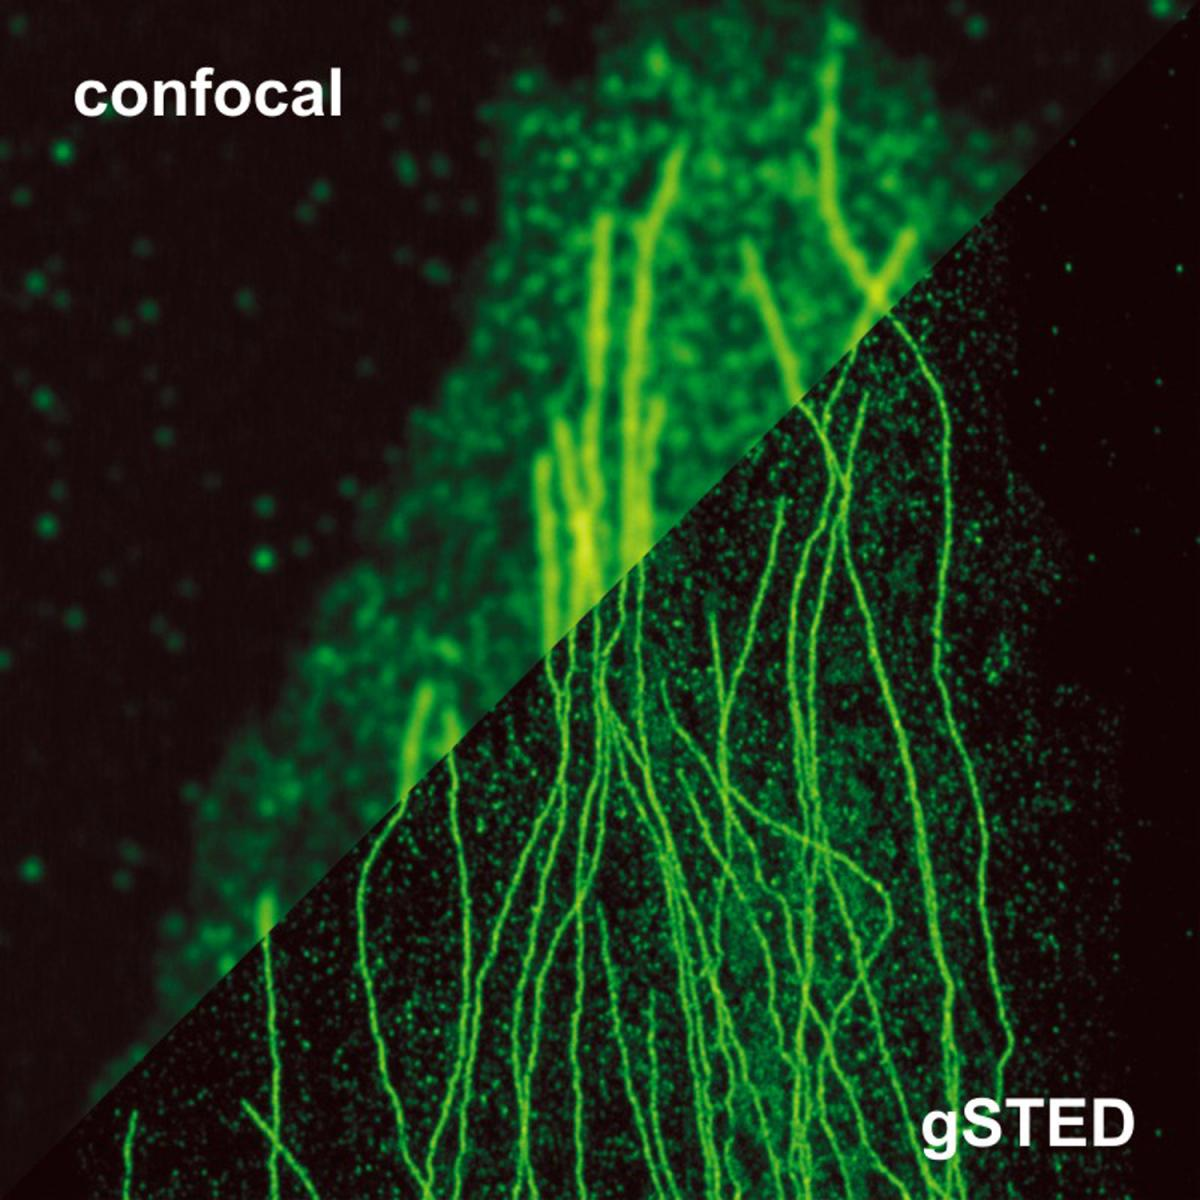 The new microscopy technique (lower right) brings into focus details of cell structures never seen before with light.